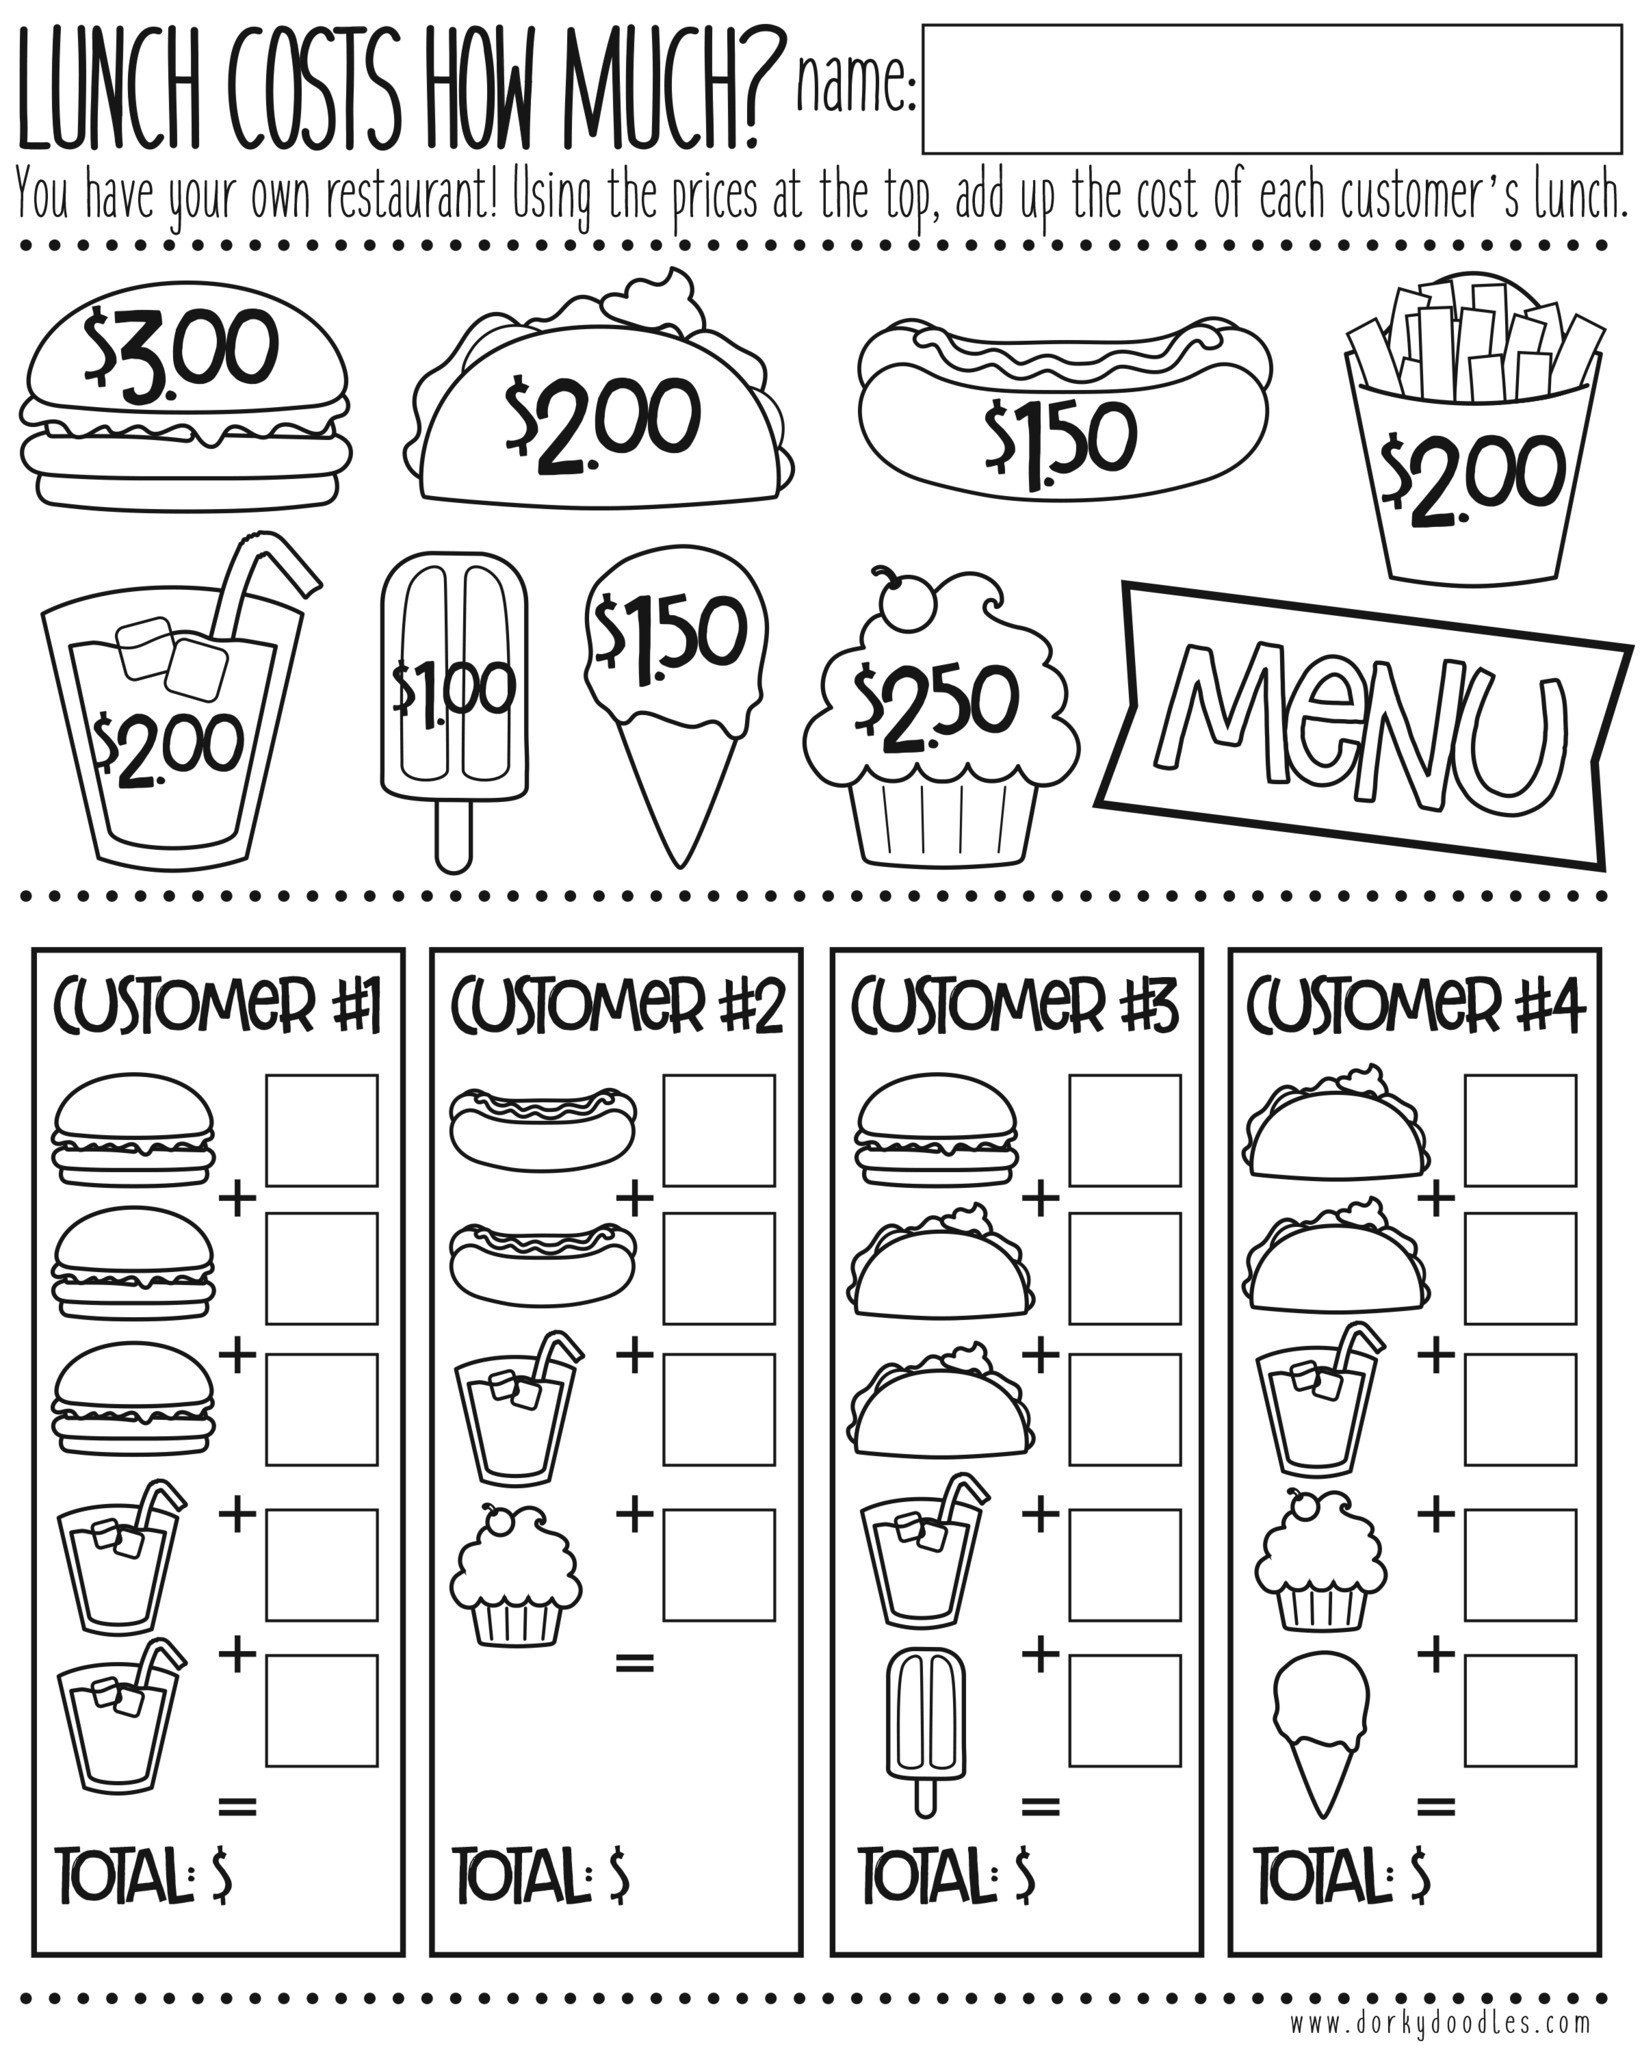 hight resolution of Money Math Practice - How Much Does Lunch Cost?   Money math